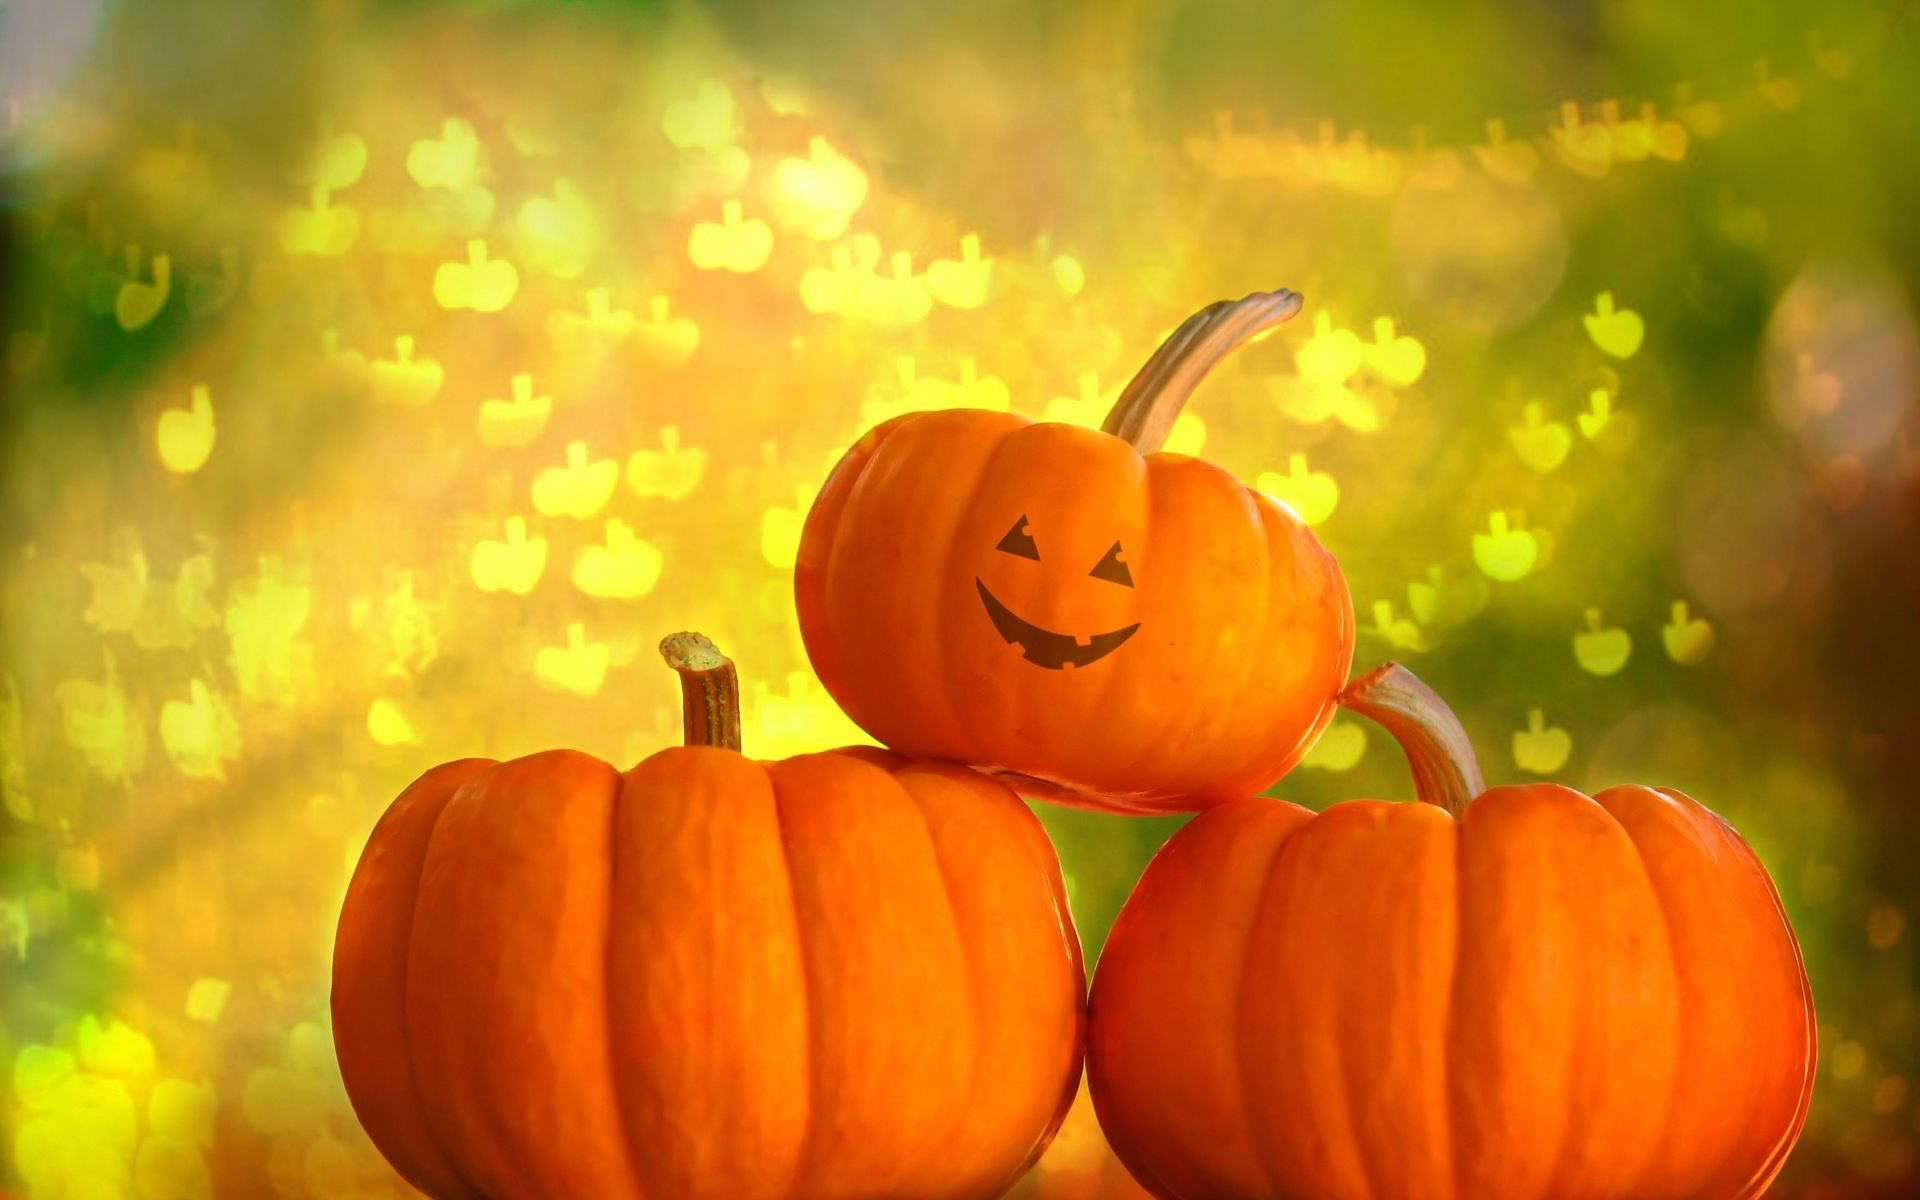 Halloween Pumpkins Desktop Wallpaper – WallpaperSafari. Halloween Pumpkins  Desktop Wallpaper WallpaperSafari